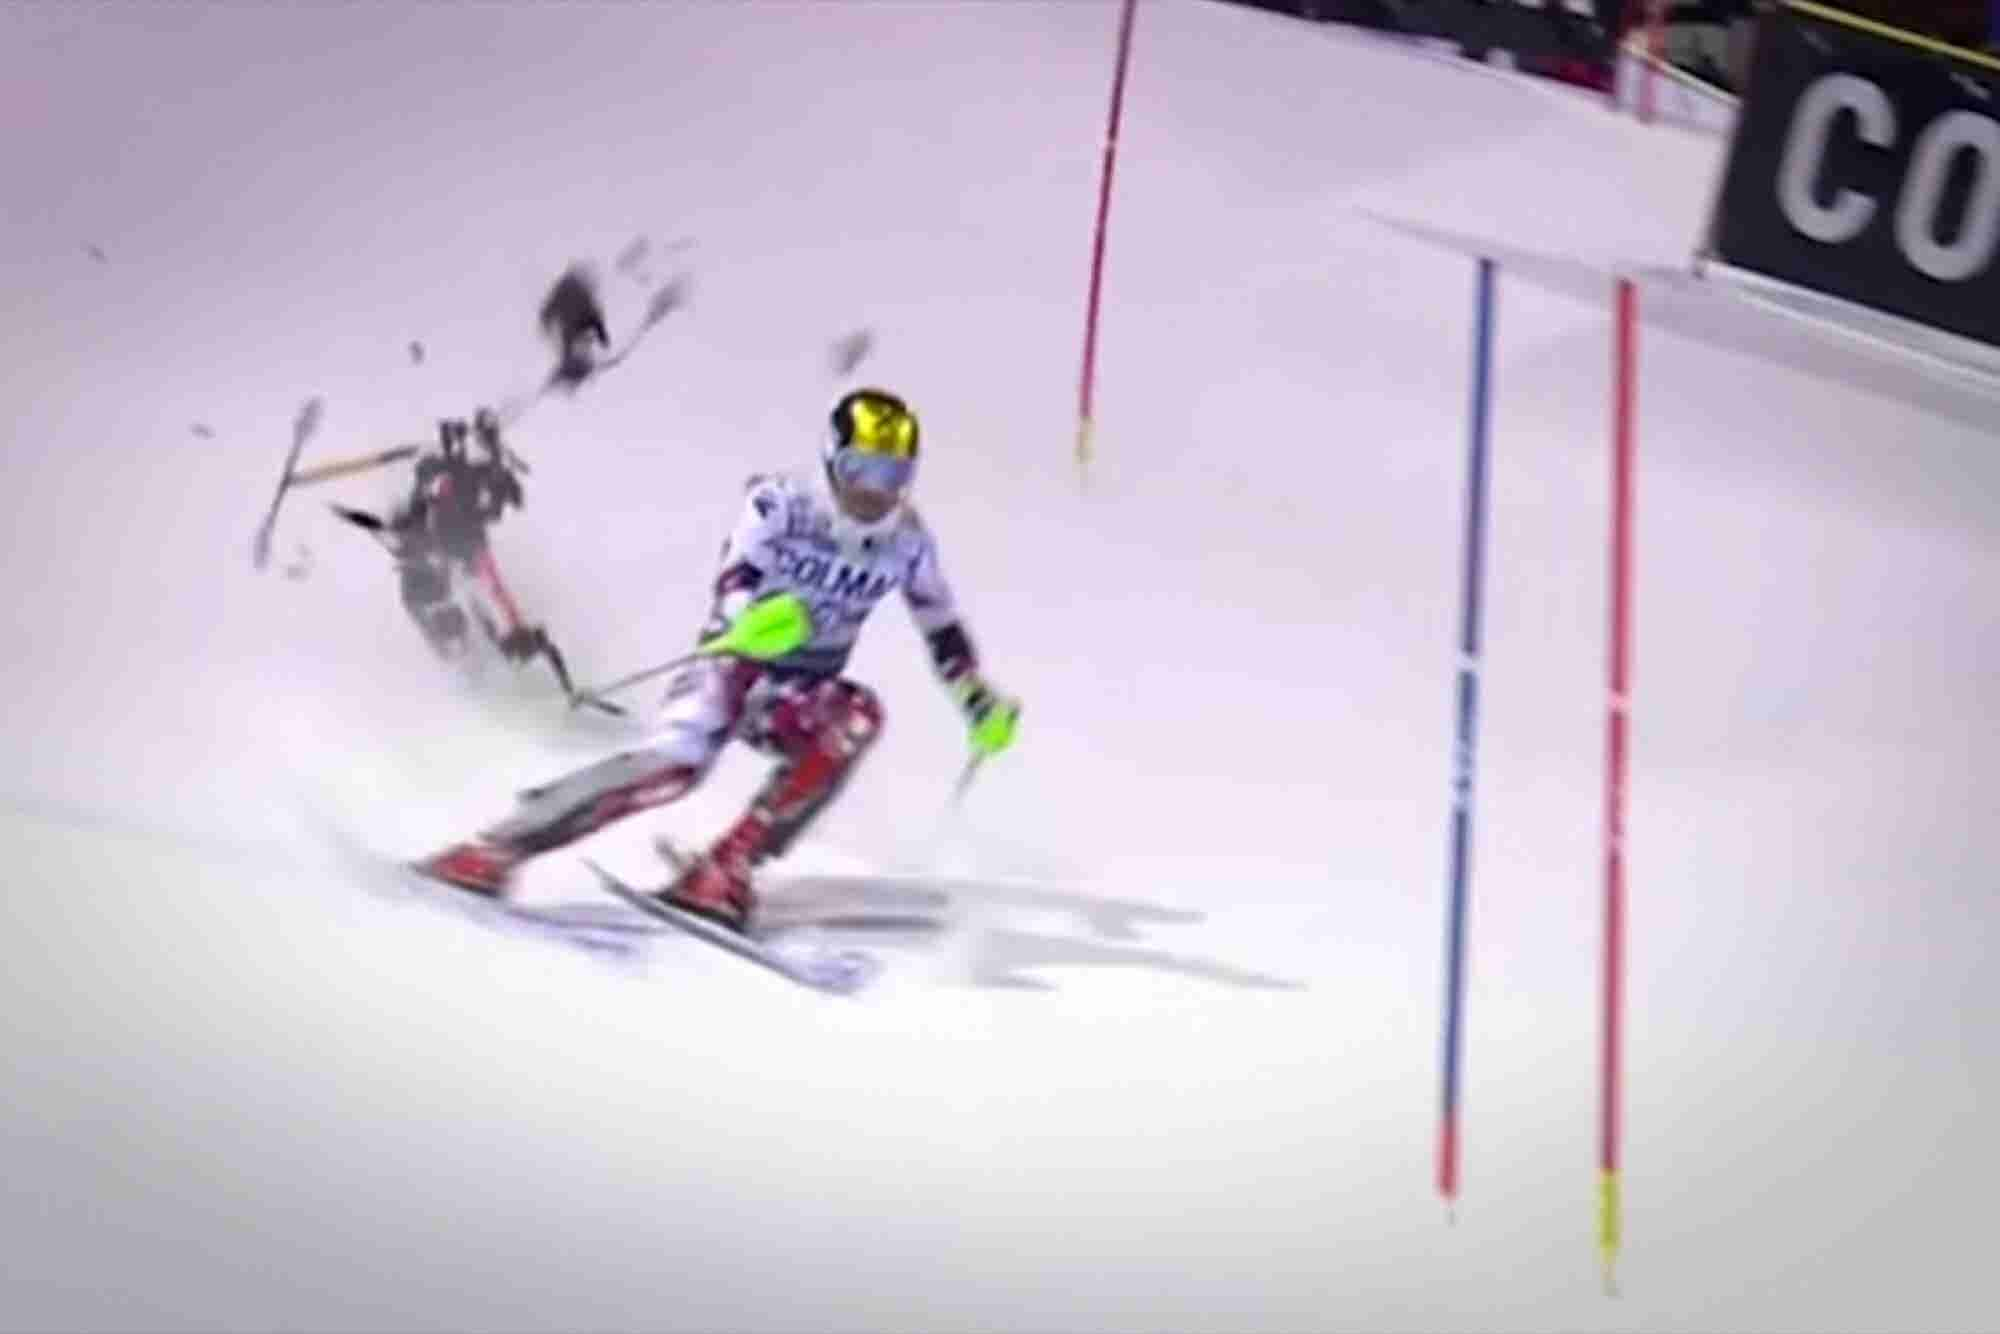 Drone Crashing From the Sky Misses World Champion Skier By a Sliver, Prompting Ban